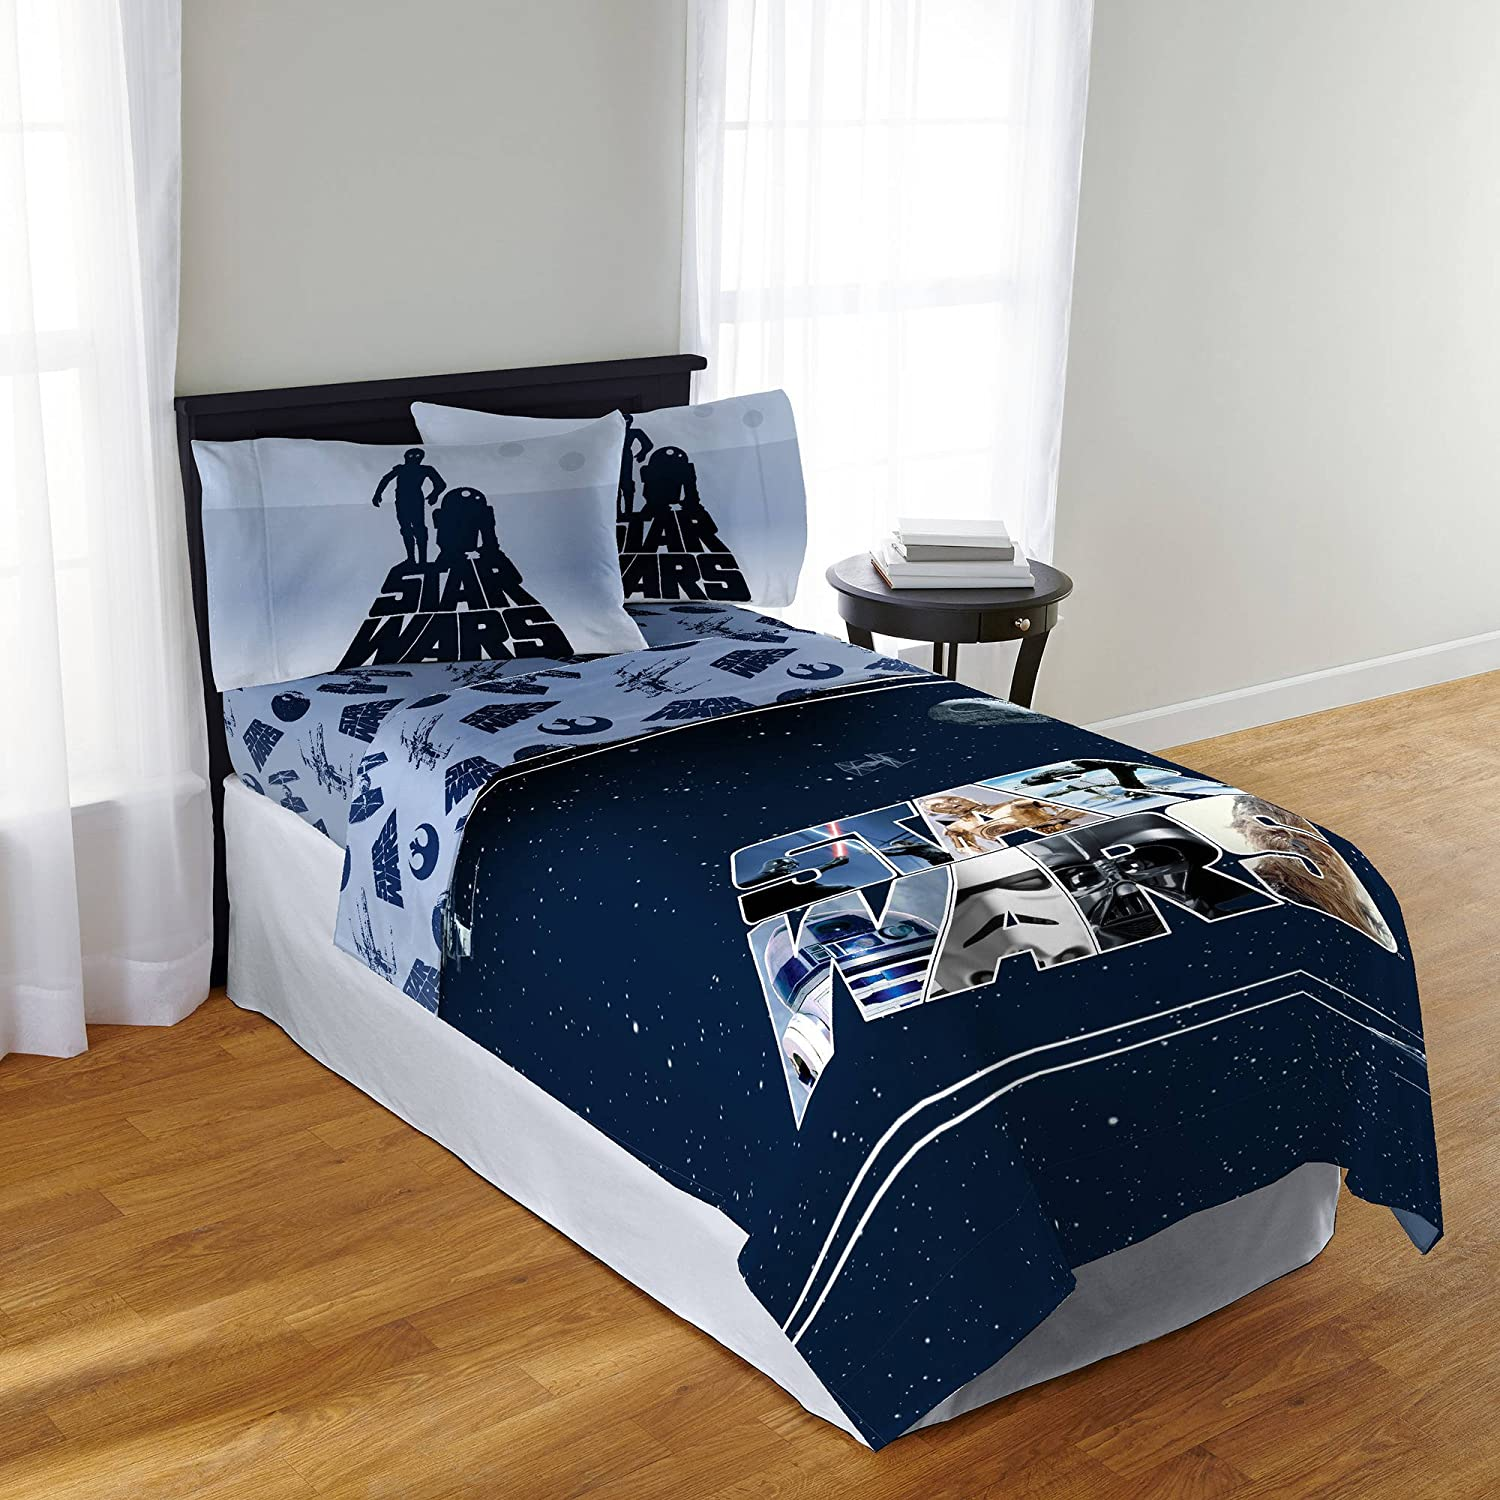 beautiful comforter twin wars and luxury for color comforters bedroom boys with sets star